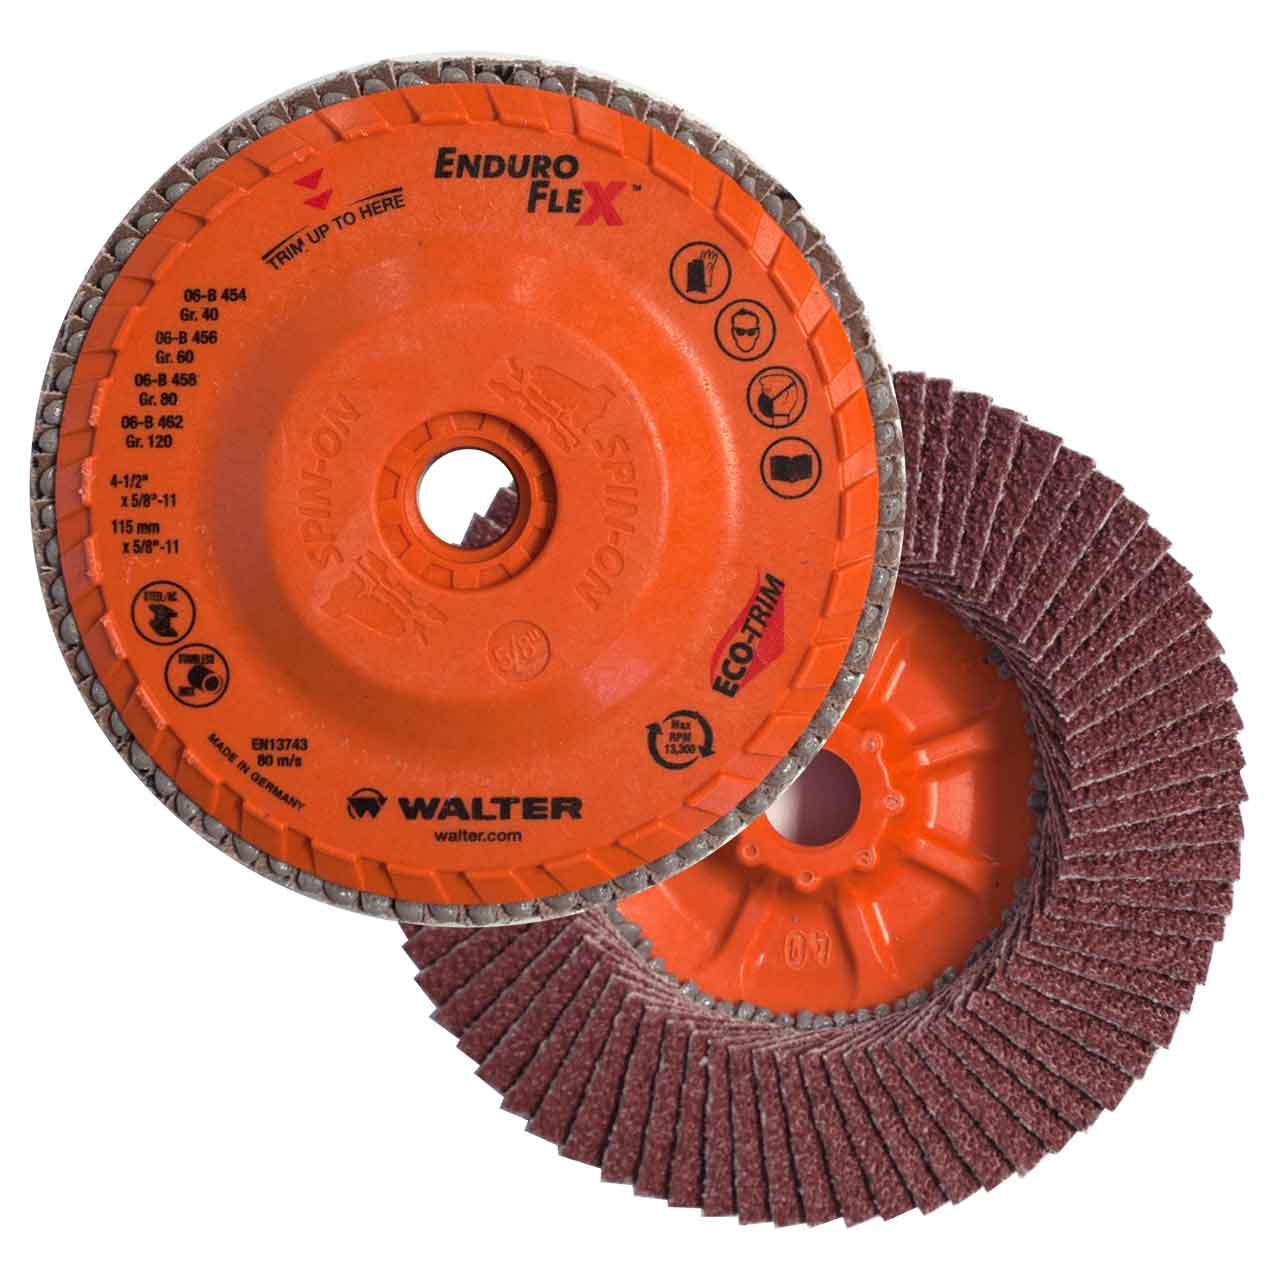 Walter 06B454 4-1/2x5/8-11 Enduro-Flex Spin-On Flap Disc 40 Grit | PKG = 10